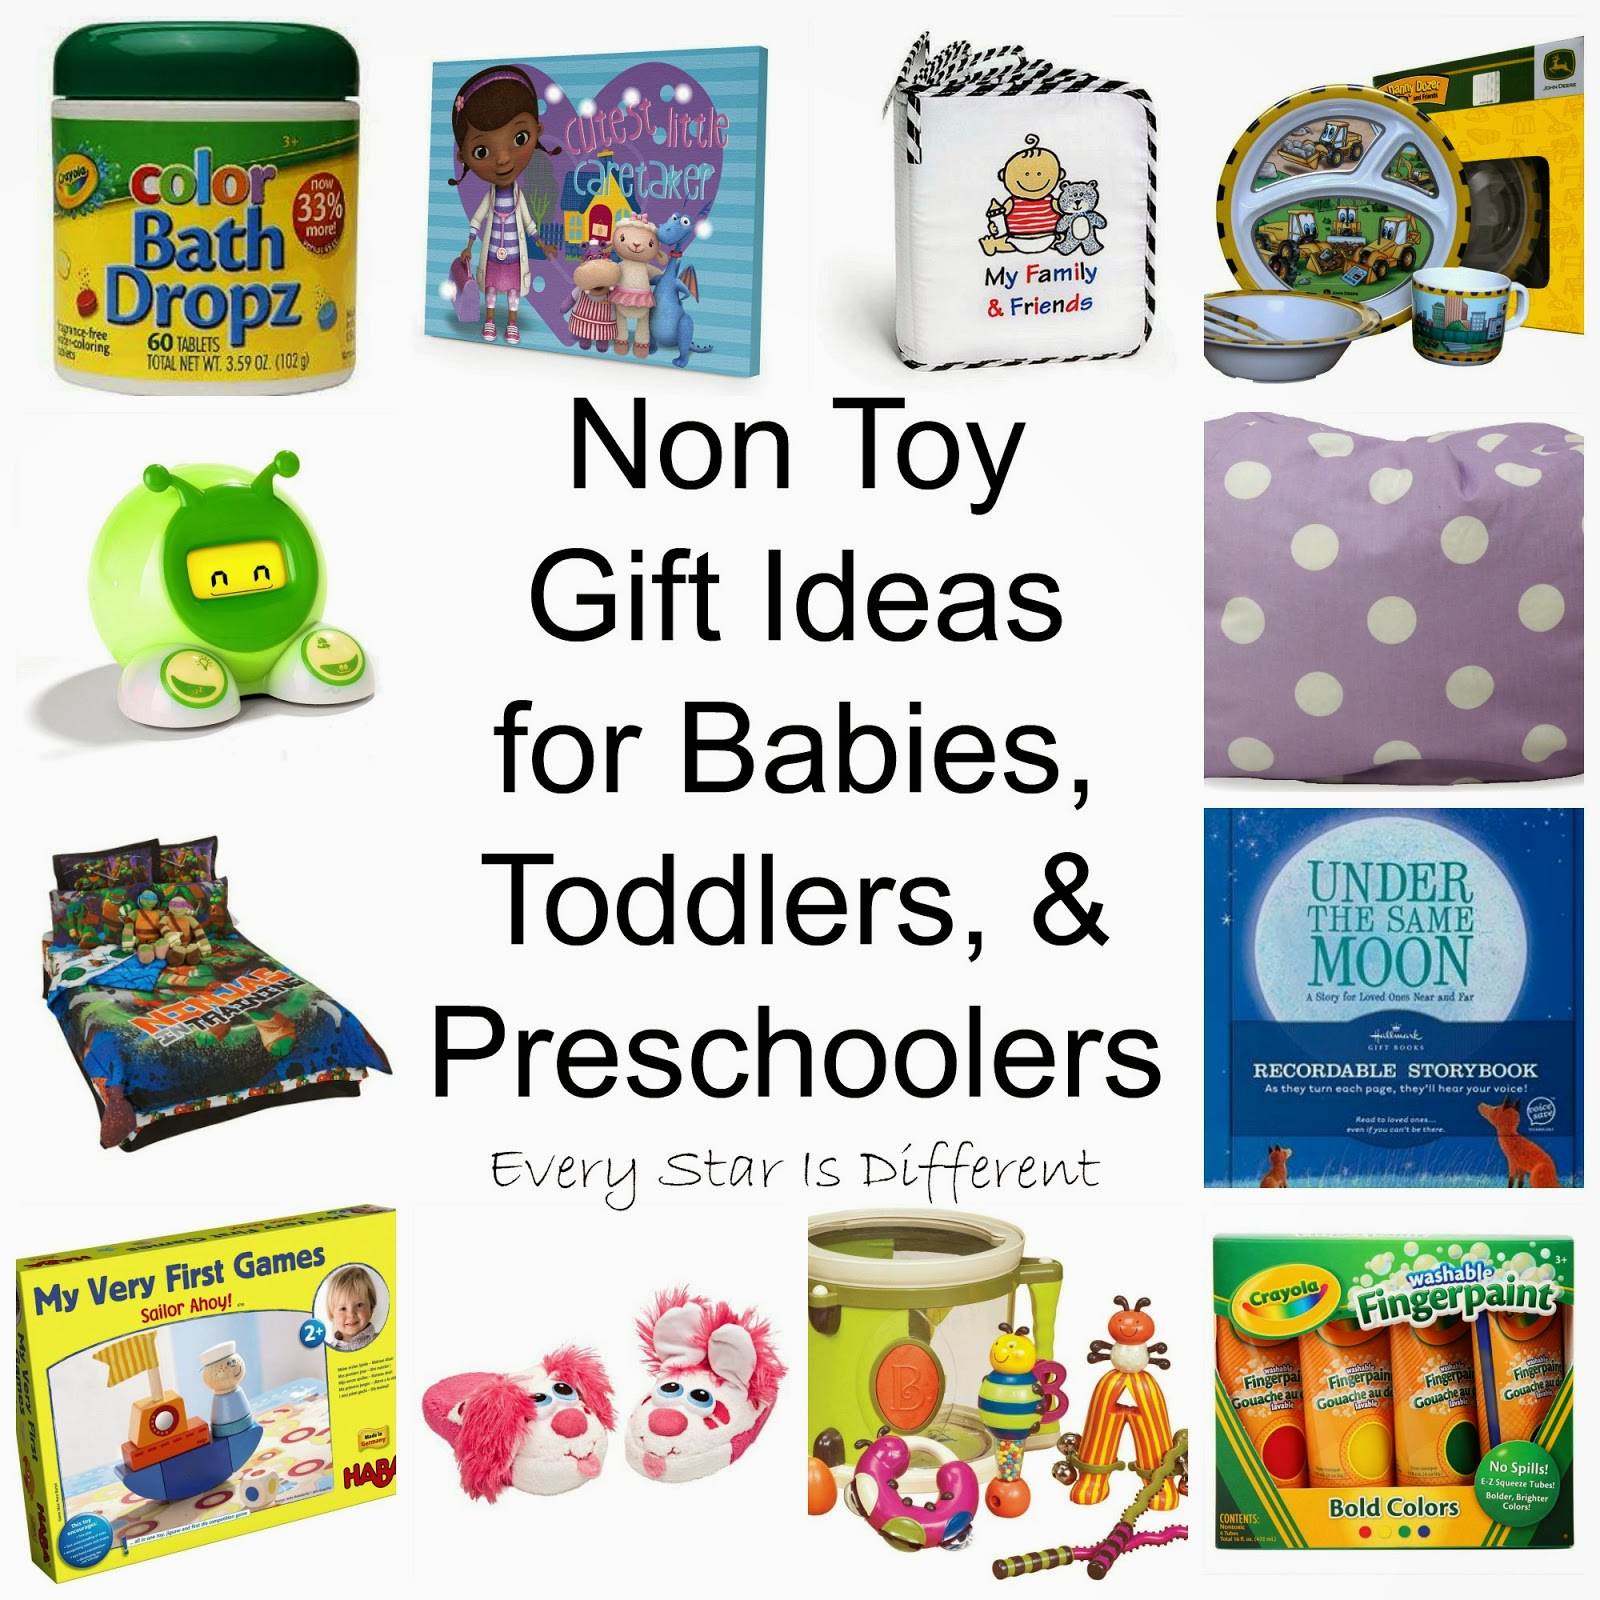 Presents Toys Christmas : Non toy gift ideas for babies toddlers preschoolers